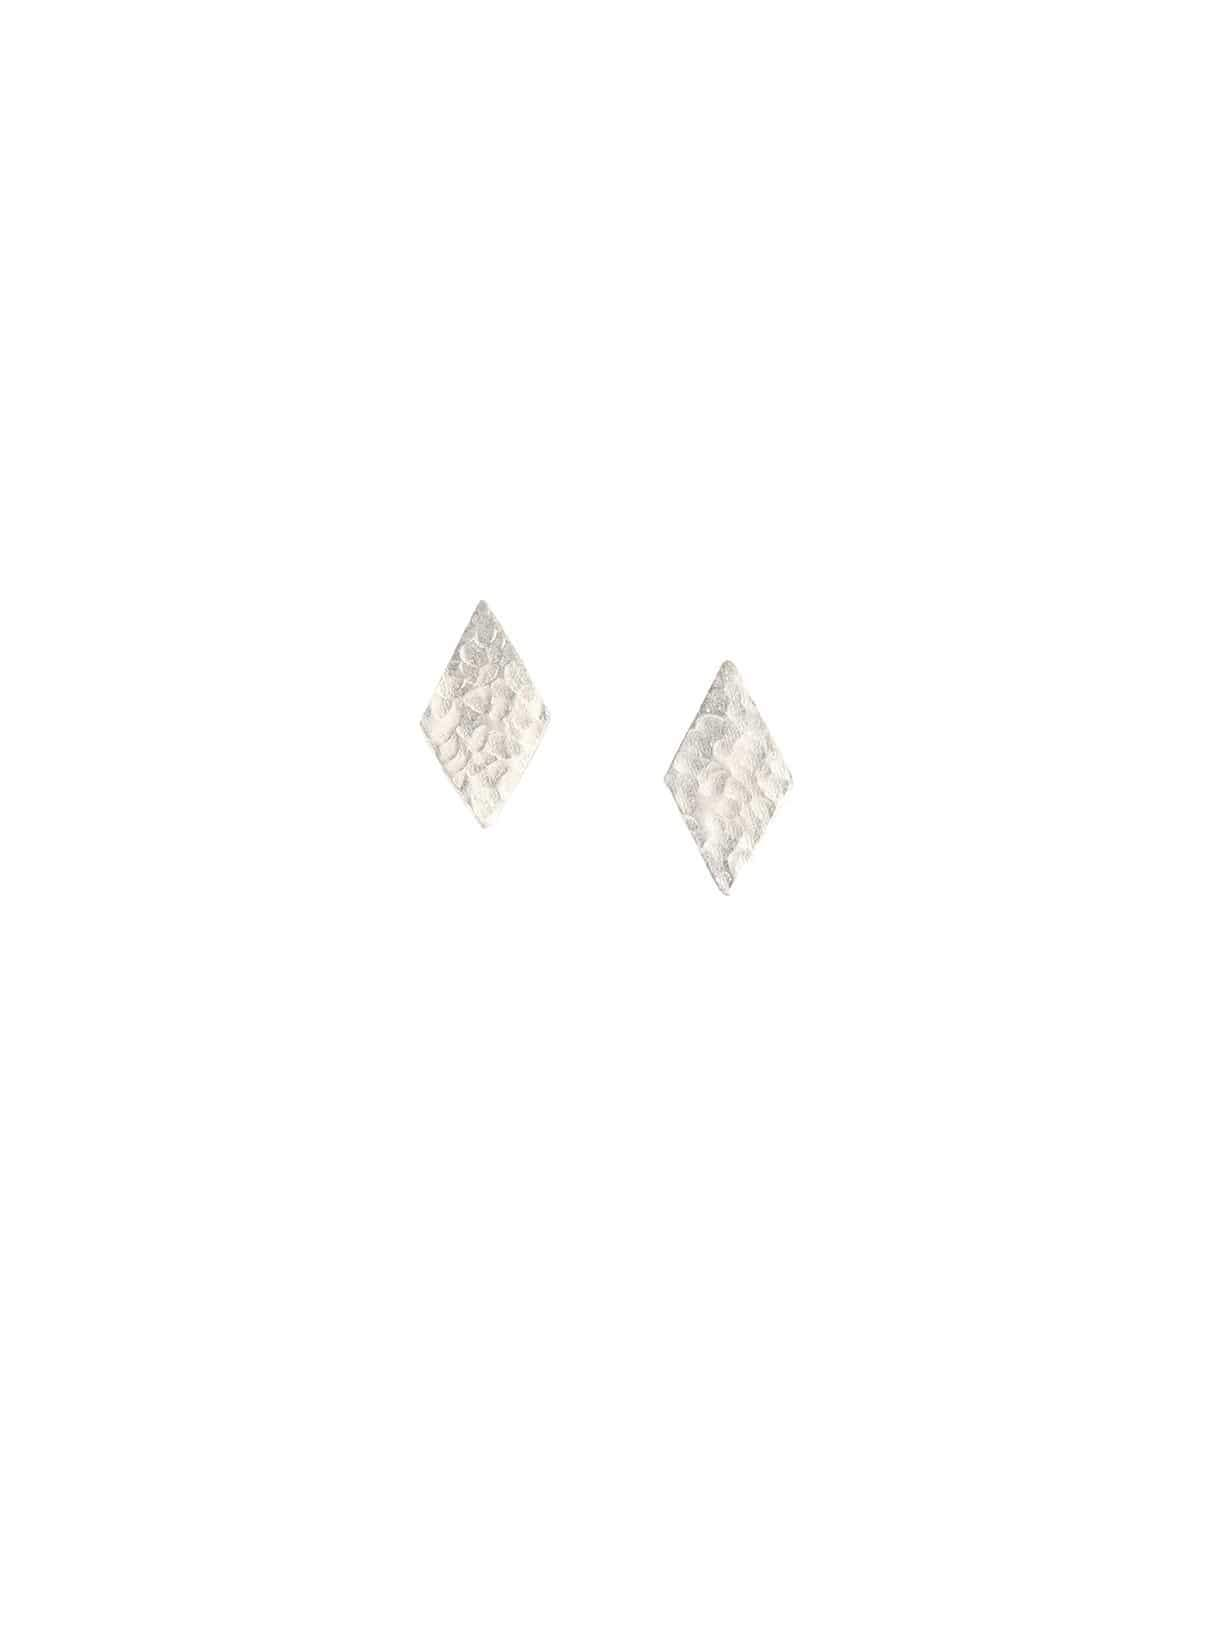 Diamond stud earrings - silver